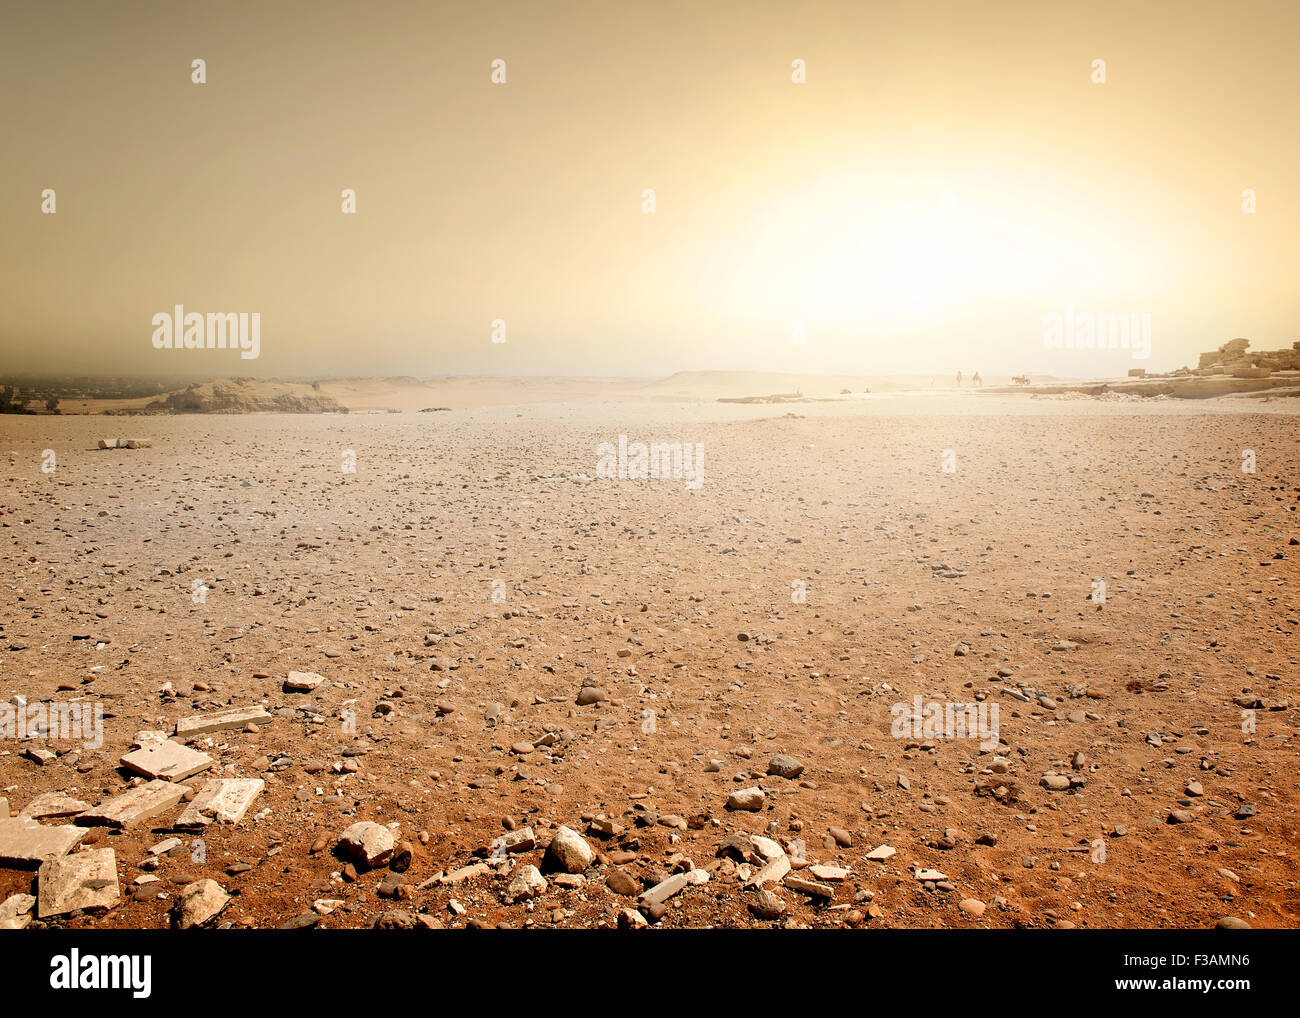 Sandy desert in Egypt at the sunset - Stock Image